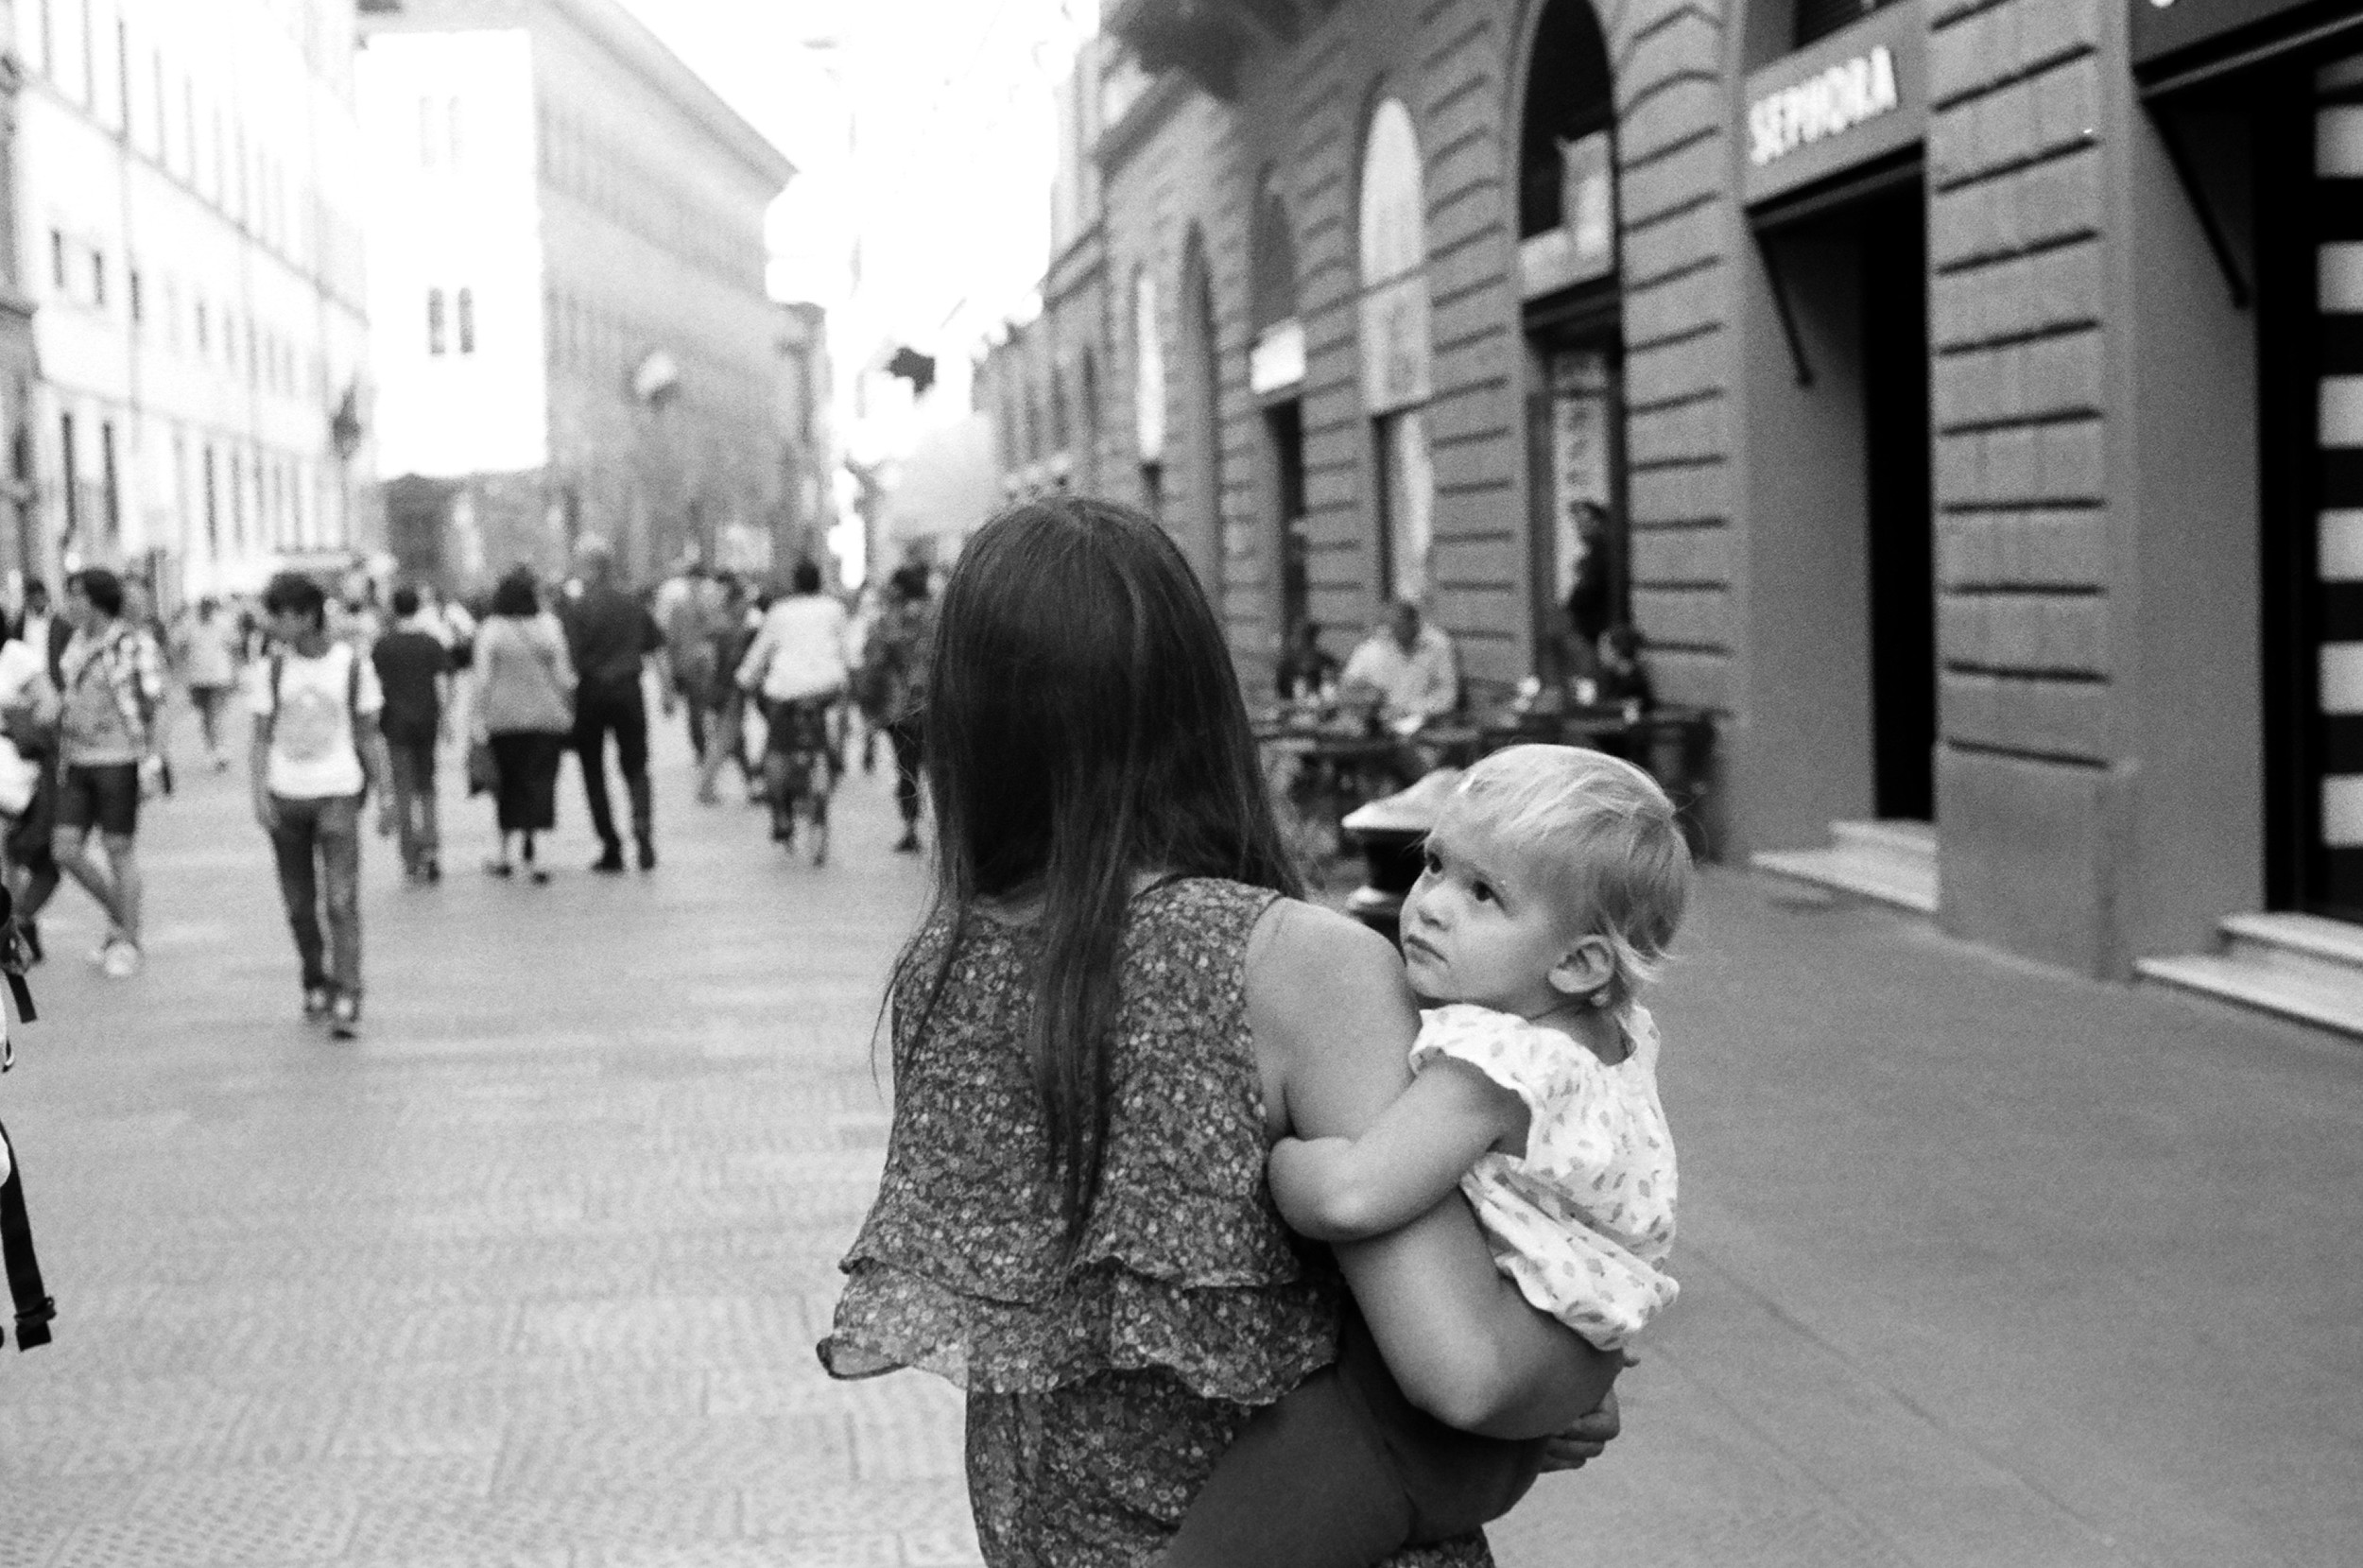 A baby and her mom doing some afternoon shopping